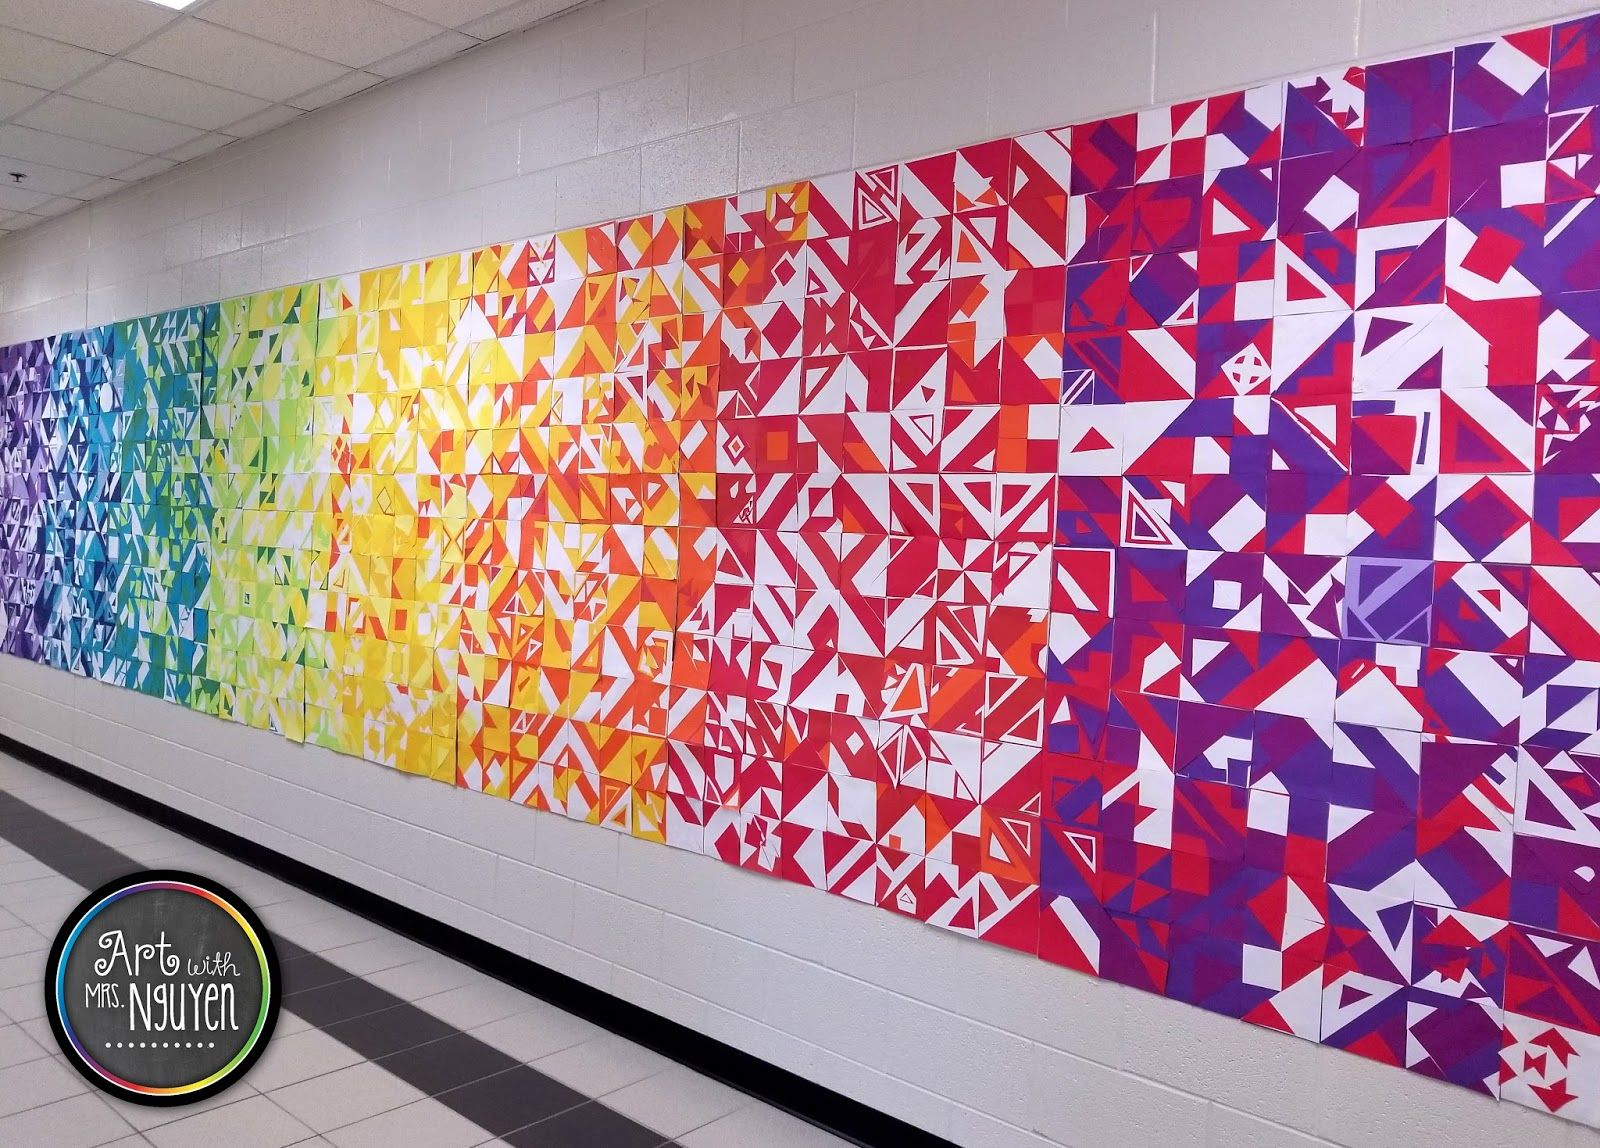 Back to School Collaborative Mural 2017 is part of Collaborative art, Art education elementary, Collaborative mural, Collaborative art projects, Elementary art classroom, Group art projects - 2 months before seeing some of my rotations, so this was a welcomed change! So during the first 8 days of school I introduced myself, went over my classroom rules, some procedures, and assigned seats for 48 separate classes! After all the boring introductory stuff, I also had my 2nd5th grade students work on a collaborative mural project  This lesson comes from Don at Shine Brite Zamorano! We started by looking at the artist Libs Elliot  I showed students some examples of her work and then we briefly talked about how she was able to simultaneously create a sense of unity and variety in her artwork  After looking at some of her pieces, we landed on a slide which showed the GORGEOUS mural that Don had his students make, then I explained what we were going to do! Students were instructed to create a square patch with construction paper, that would be added to a nearly schoolwide collaborative mural project inspired by the work of Libs Elliot  At each of my tables I put a basket filled with 6 x6  squares, large triangles (cut from 6 x6  squares), and 3 x3  squares in a number of different colors (colors were switched out for each rotation)  Students were told they needed one large square, one large triangle, and two small squares (which could be cut into smaller triangles)  then the rest was up to them! I used the following schedule for my color rotations Rotation 1 Scarlet, Magenta, White Rotation 2 Red, Scarlet, Orange (some), White Rotation 3 Orange, Gold, Red (some), White Rotation 4 Gold, Yellow, Light Yellow, Orange (some), White Rotation 5 Light Yellow, Hot Lime, Holiday Green (some), White Rotation 6 Hot Lime, Holiday Green, Turquoise, White Rotation 7 Turquoise, Royal Blue, Sky Blue, White Rotation 8 Royal Blue, Purple, Lilac, White I gotta be honest  the prep work for this one was INTENSE   but the results are STUNNING! For this project (and really all my other projects), we used TruRay Sulphite Construction Paper  If you haven't used it before  you haven't been living! Their paper comes in super vibrant colors AND it doesn't fade (which means this display will be up for a while)! To hang, I glued down the squares onto sheets of butcher paper, and then used packing tape and command strips to attach it to the wall  Command strips were ESSENTIAL to getting this to stay up!! The other specials teachers and I think that there is some kind of conspiracy going on in which the county is spraying something on our walls to make sure no tape sticks to it  I really think we're on to something!